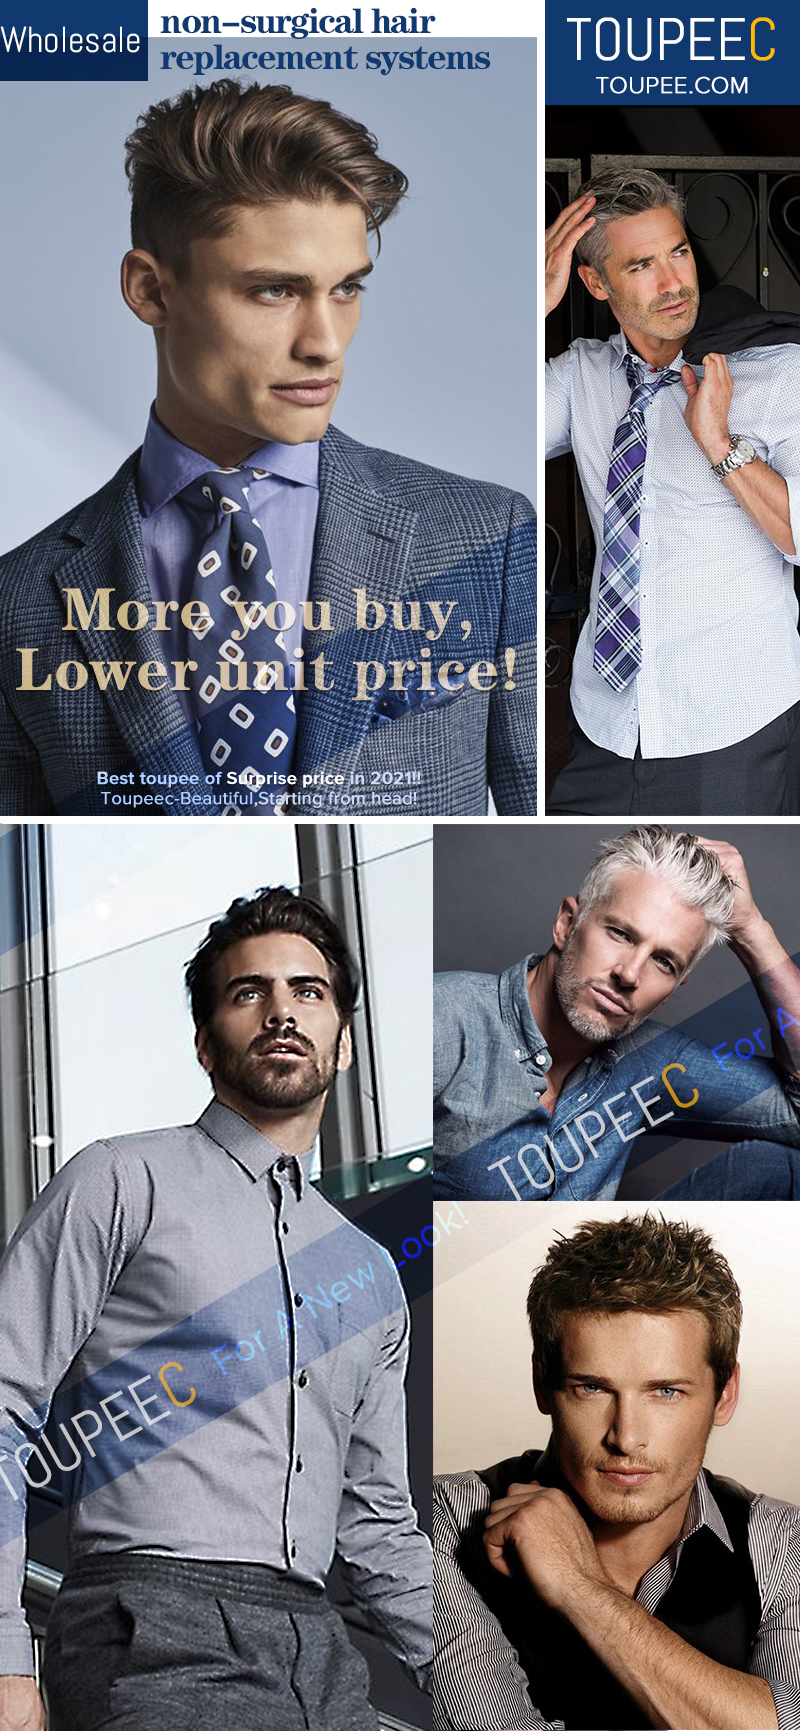 Wholesale non-surgical hair replacement systems for men